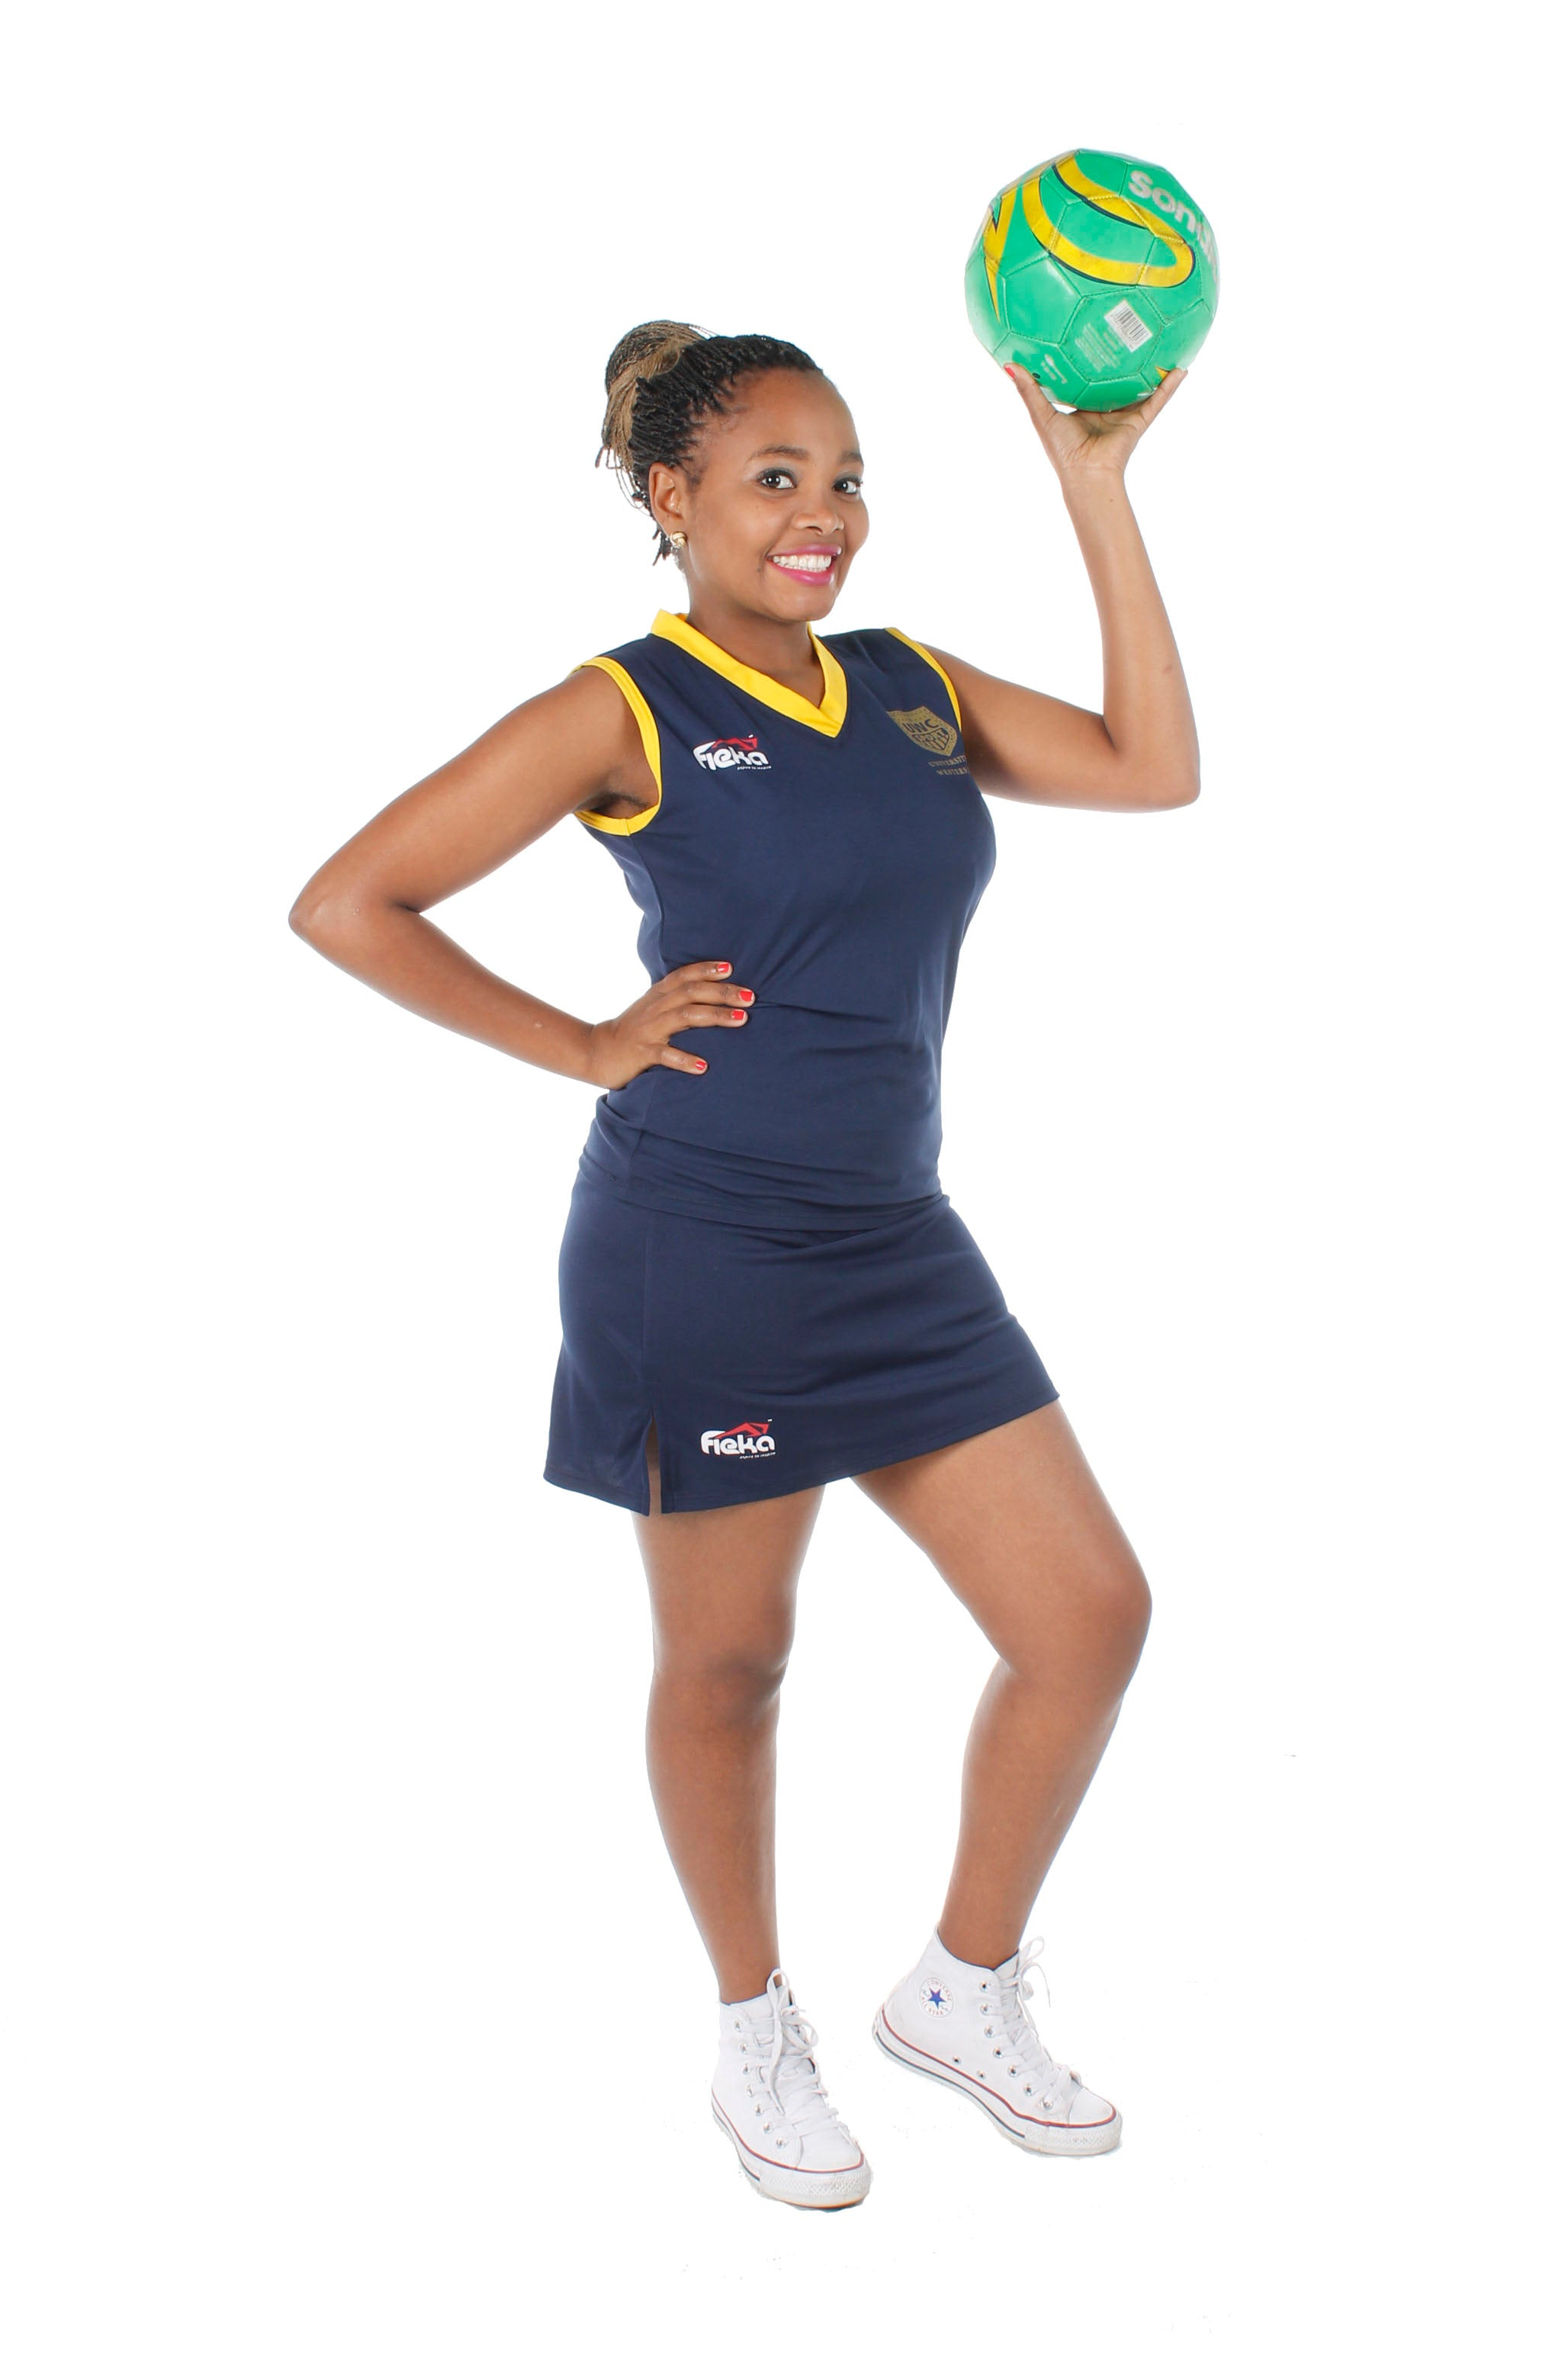 FIEKA Volleyball Netball Hockey Uniform